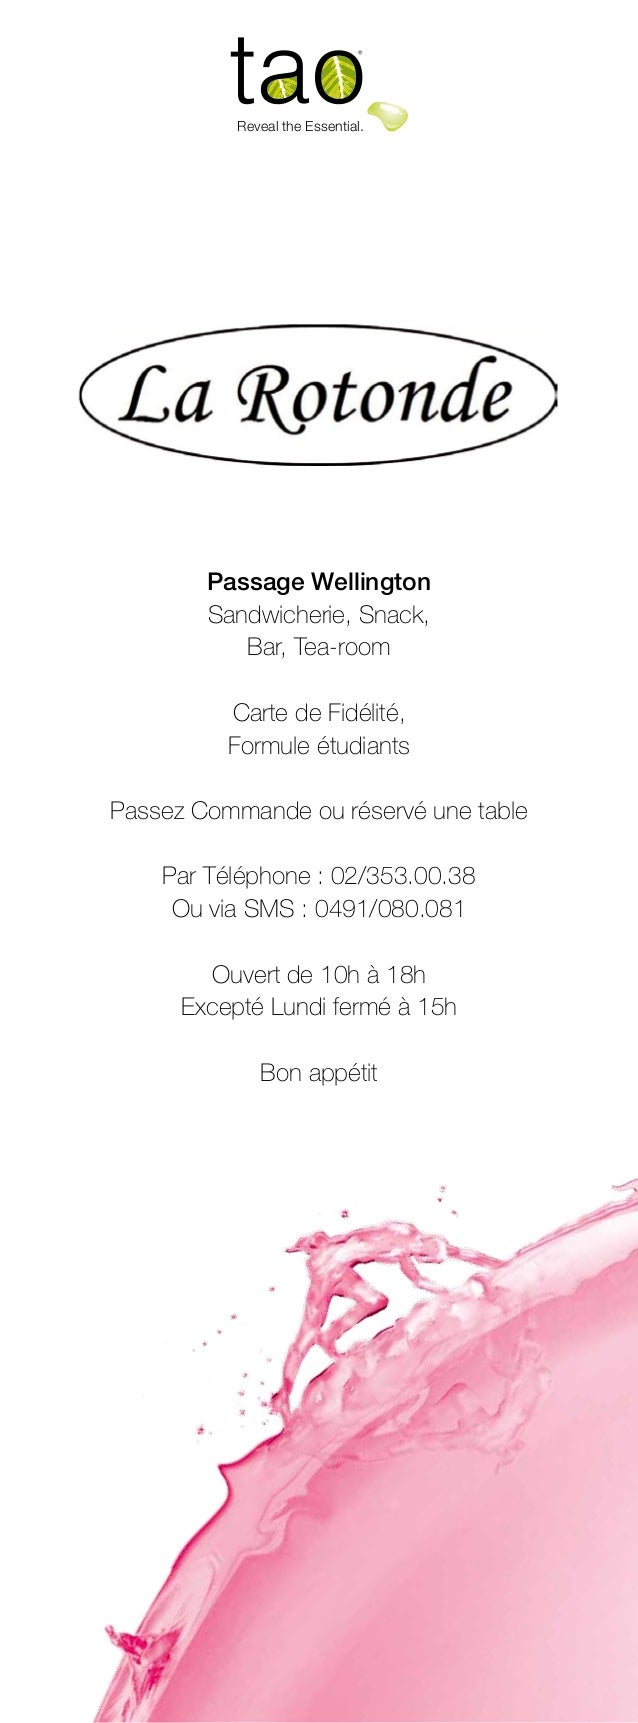 Reveal the Essential.  Passage Wellington Sandwicherie, Snack, Bar, Tea-room Carte de Fidélité, Formule étudiants Passez C...